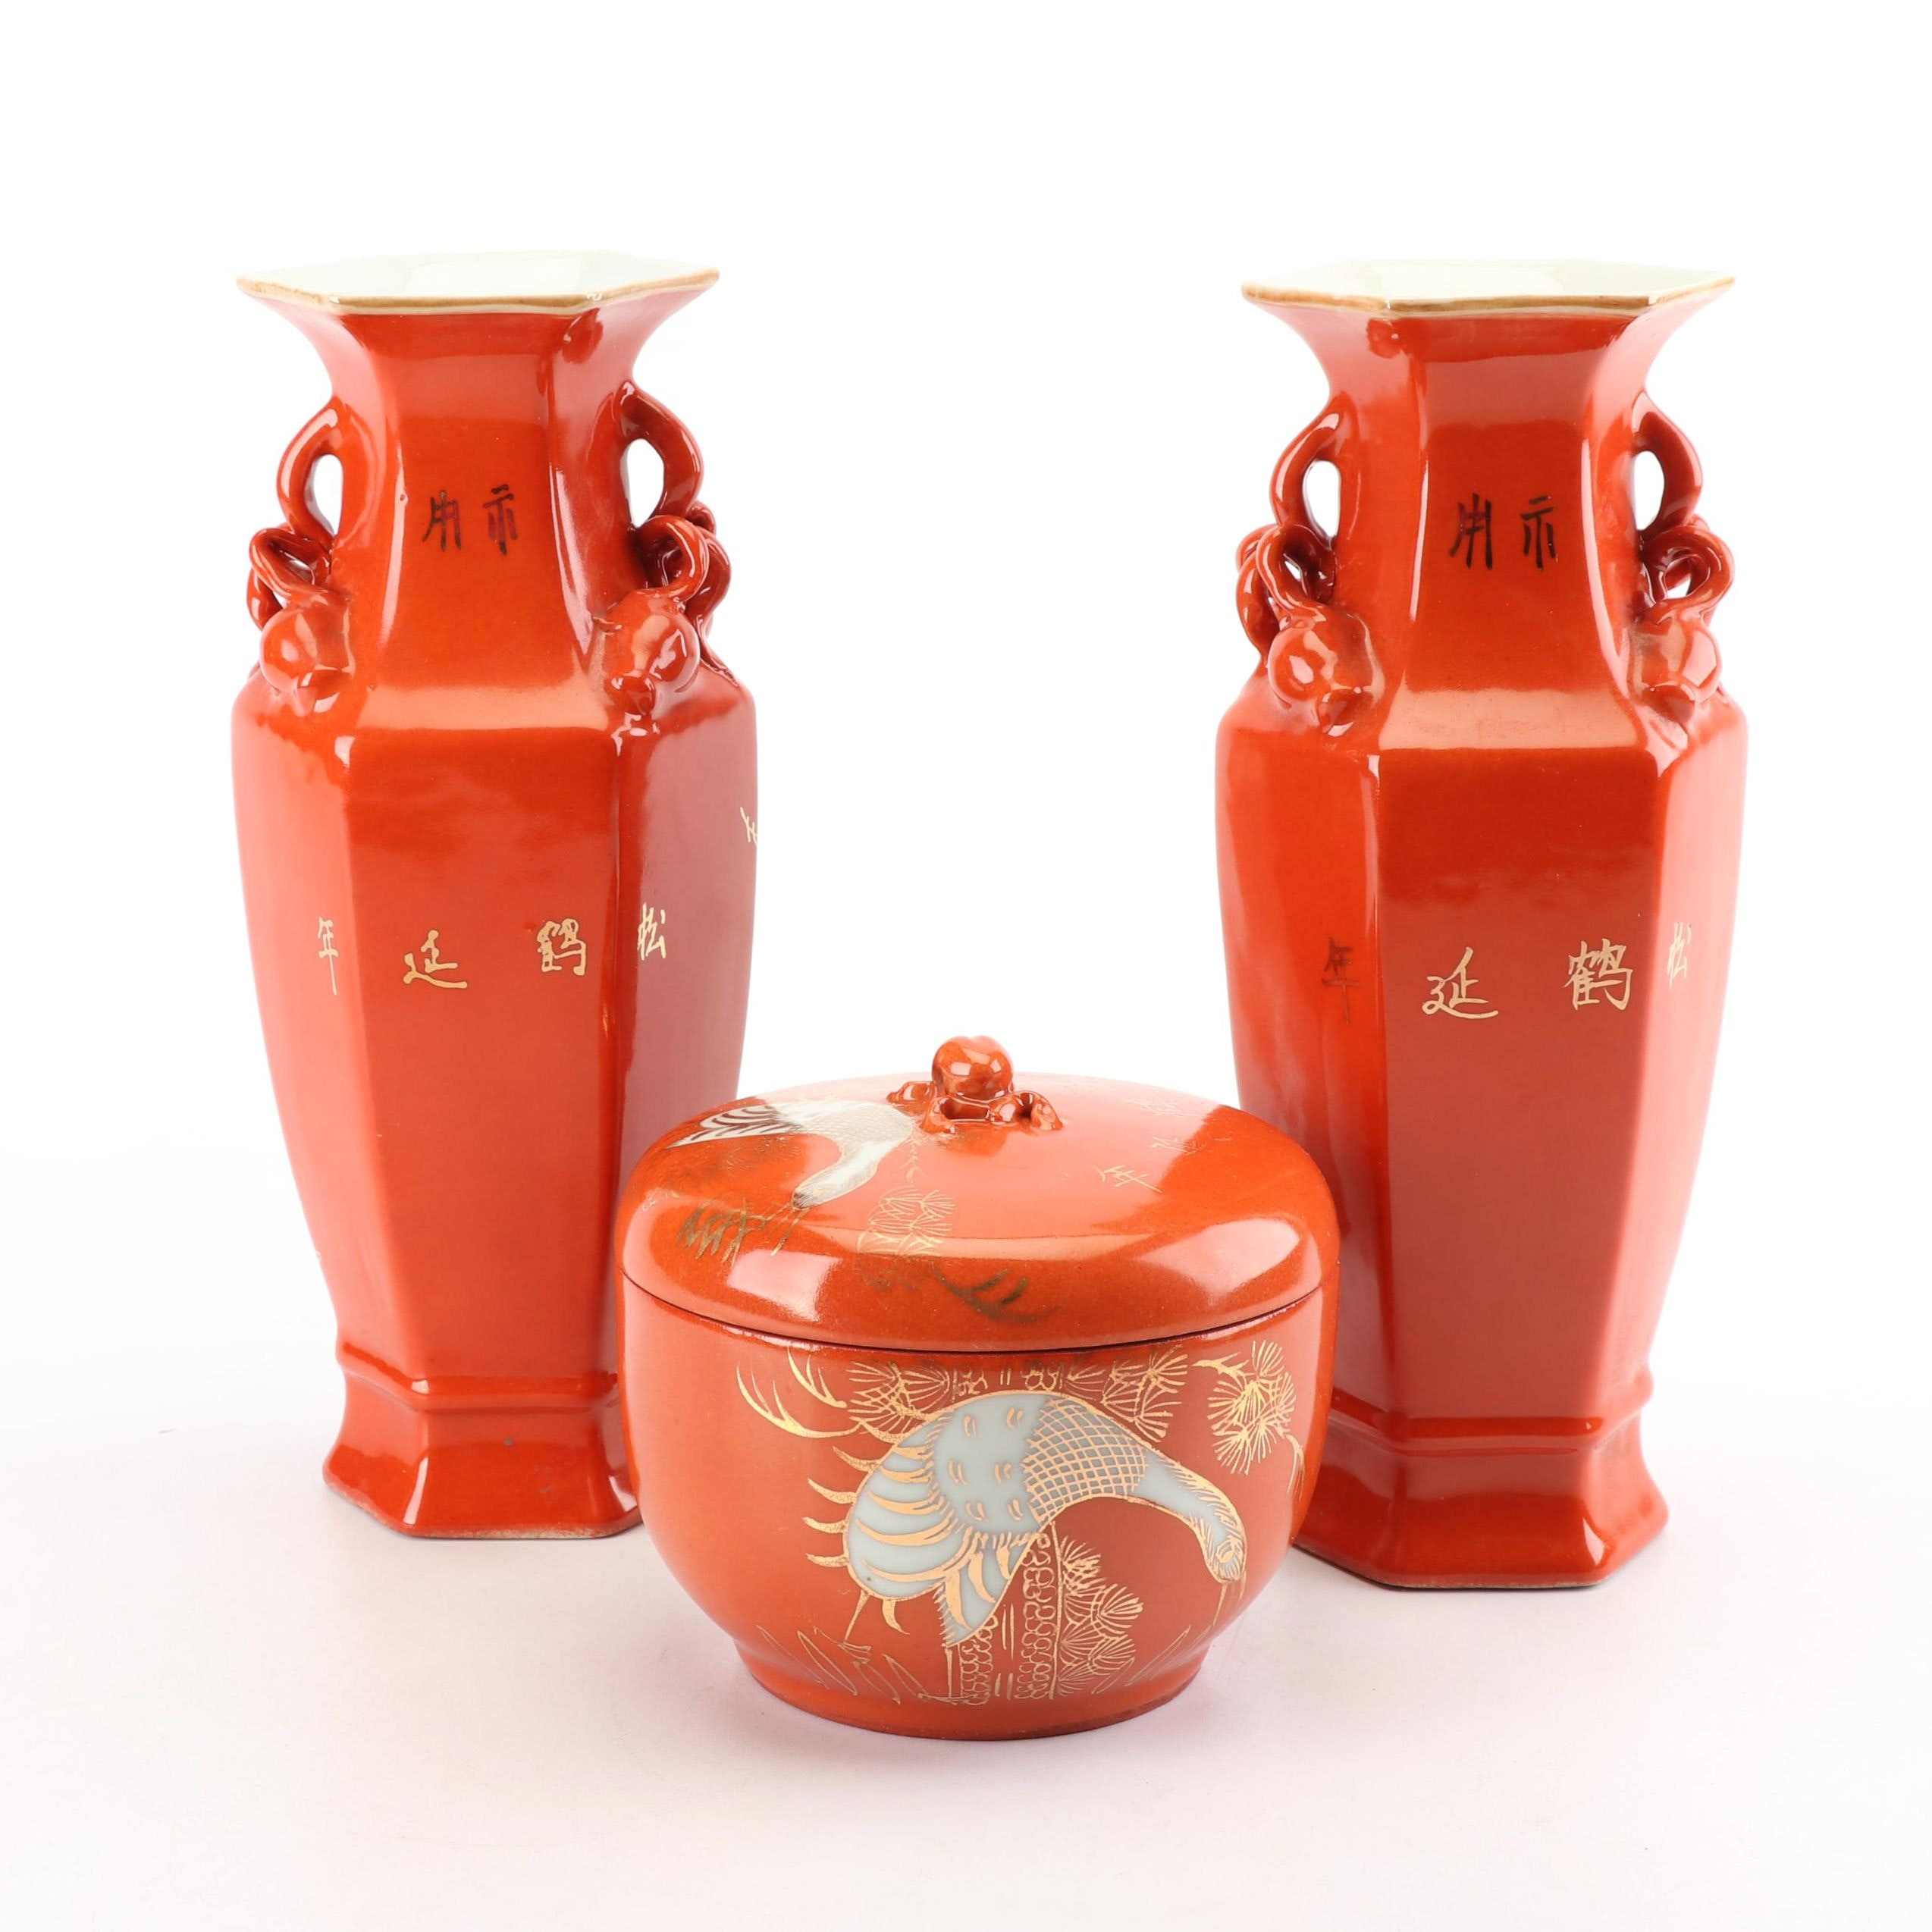 Chinese Persimmon Crane Motif Vases and Covered Jar